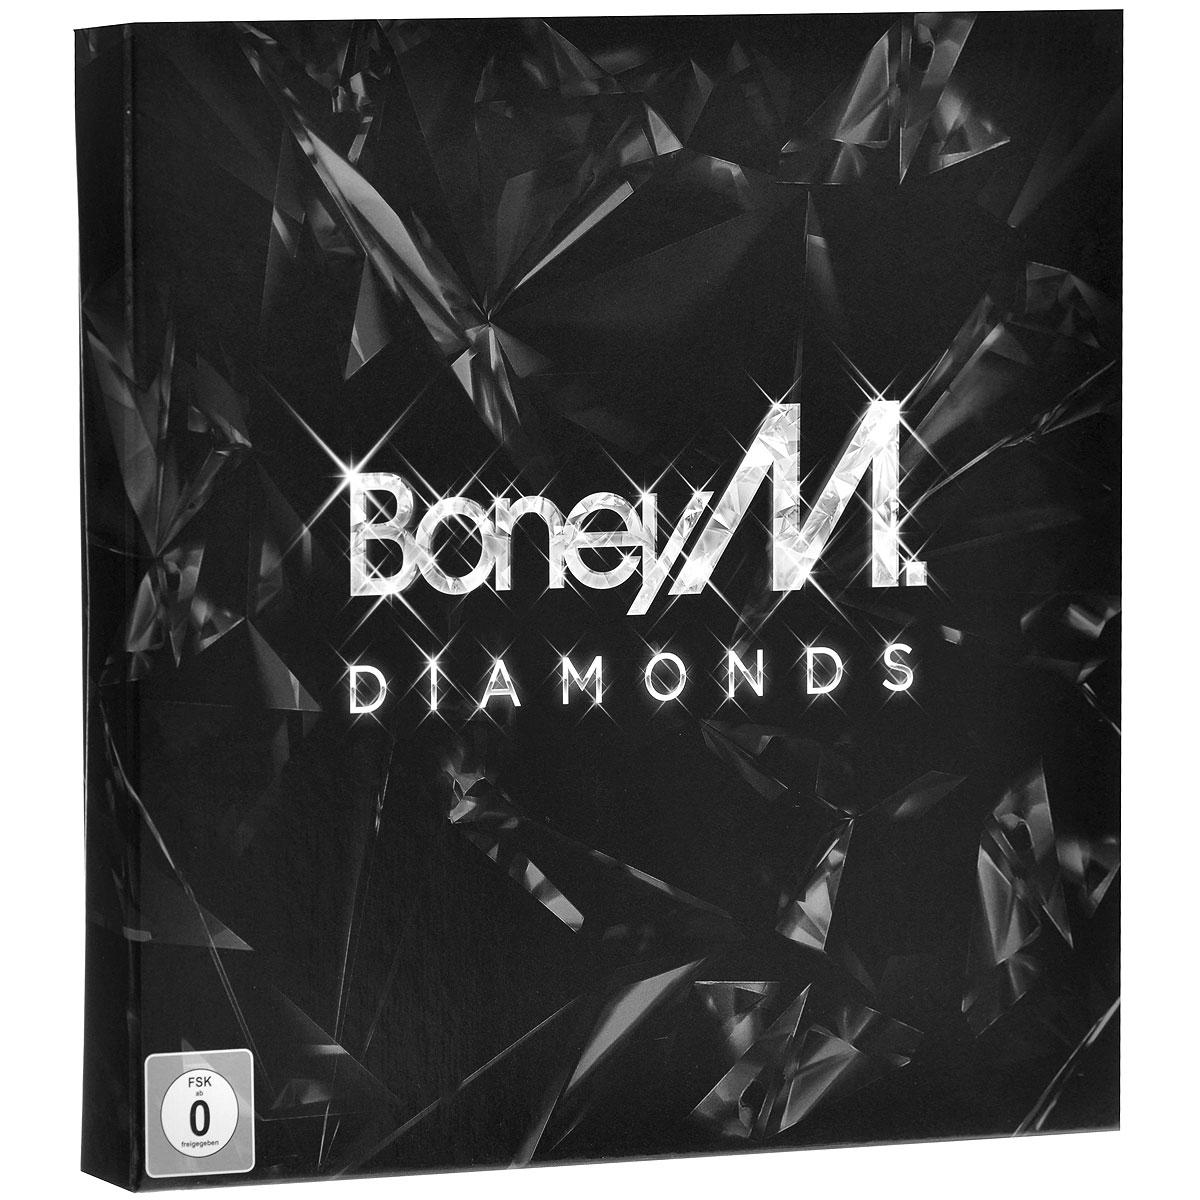 Boney M Boney M. Diamonds (3 CD + DVD + LP) kurs und ubungsbuch a2 m 2 audio cds